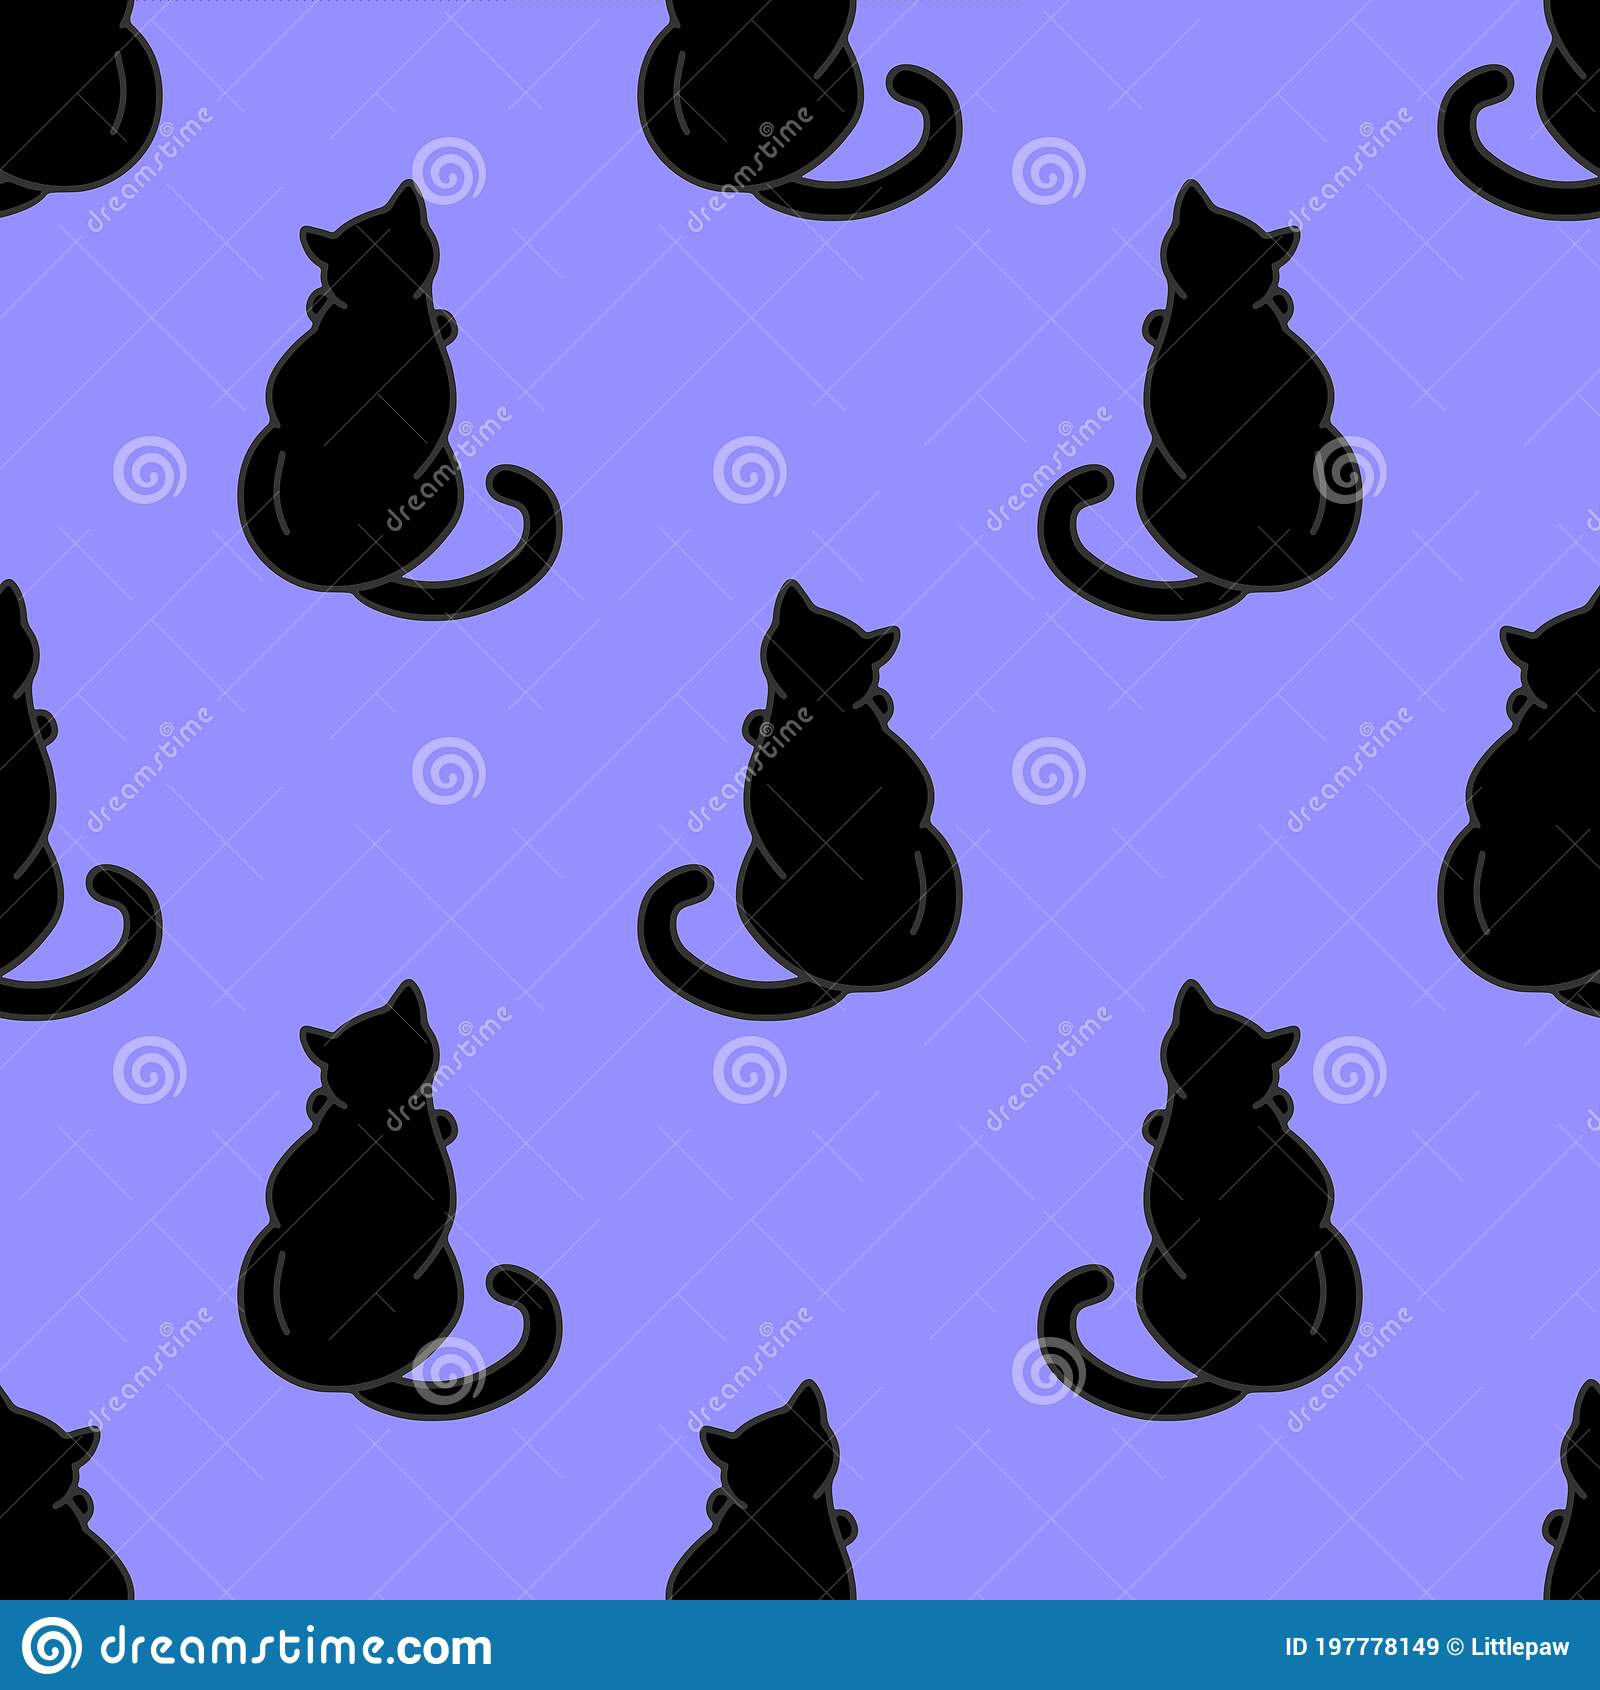 seamless pattern cute black cats texture wallpapers stationery fabric wrap web page backgrounds vector illustration 197778149